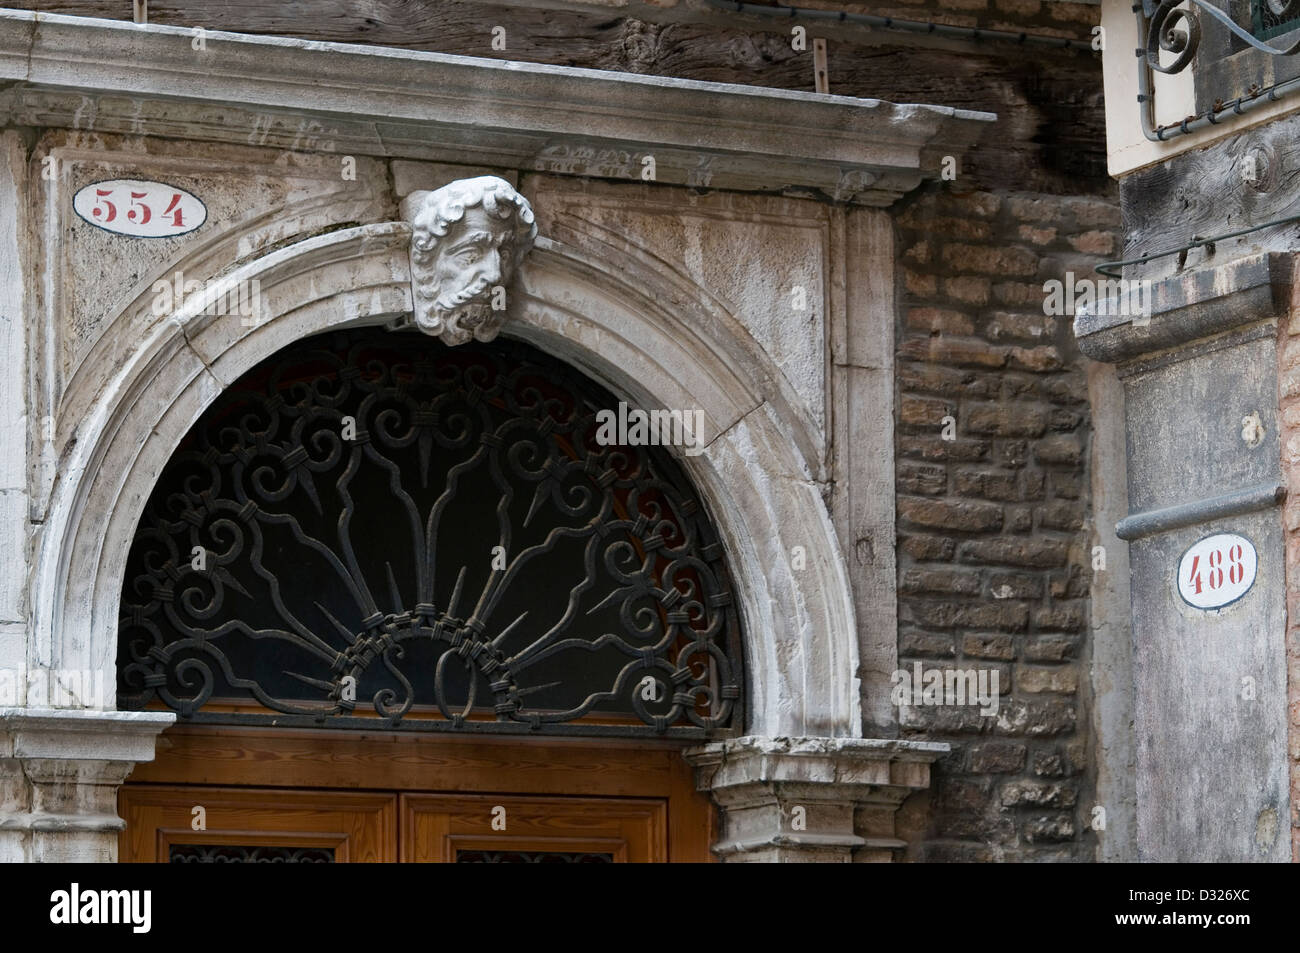 Doorway and house numbers in Campo Di Rialto Nuovo, San Polo, Venice, Italy. - Stock Image